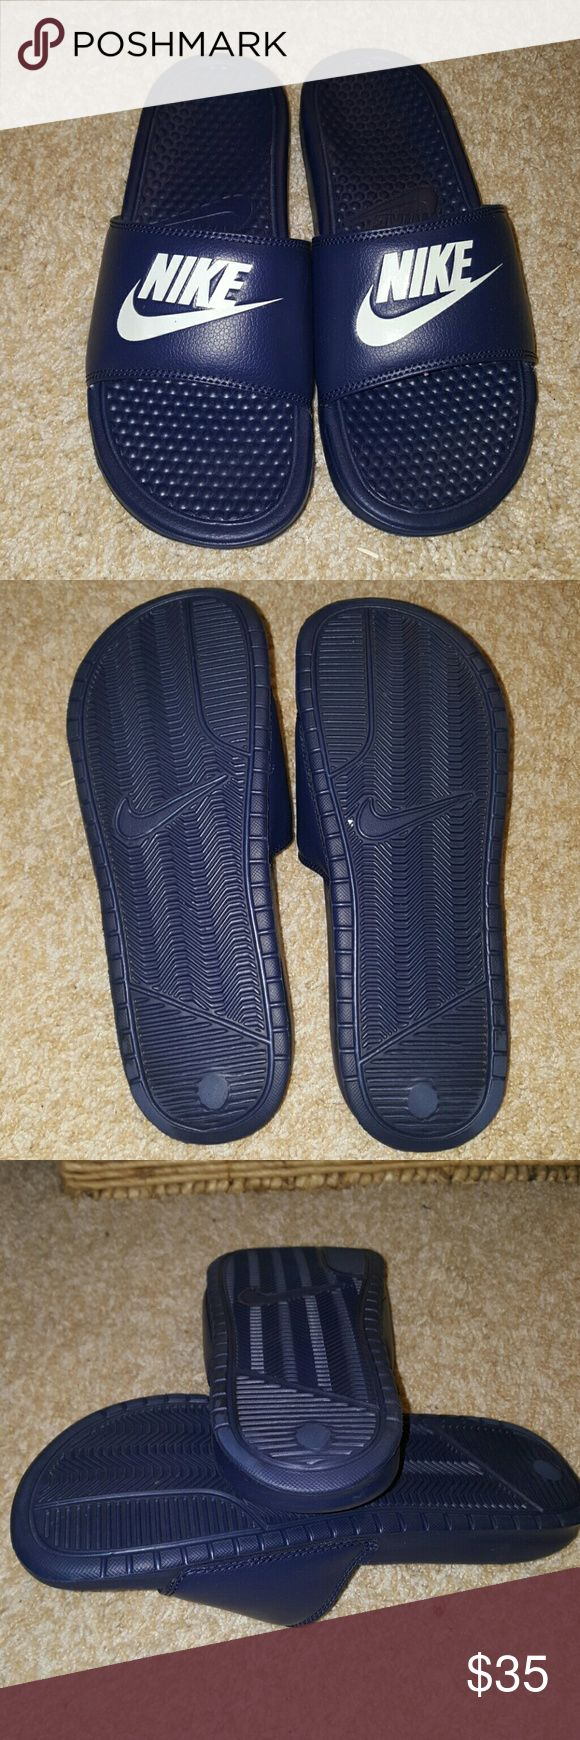 Nike slippers   (mens ) nike slippers worn once, like new size.8 great condition Nike Shoes Sandals & Flip-Flops